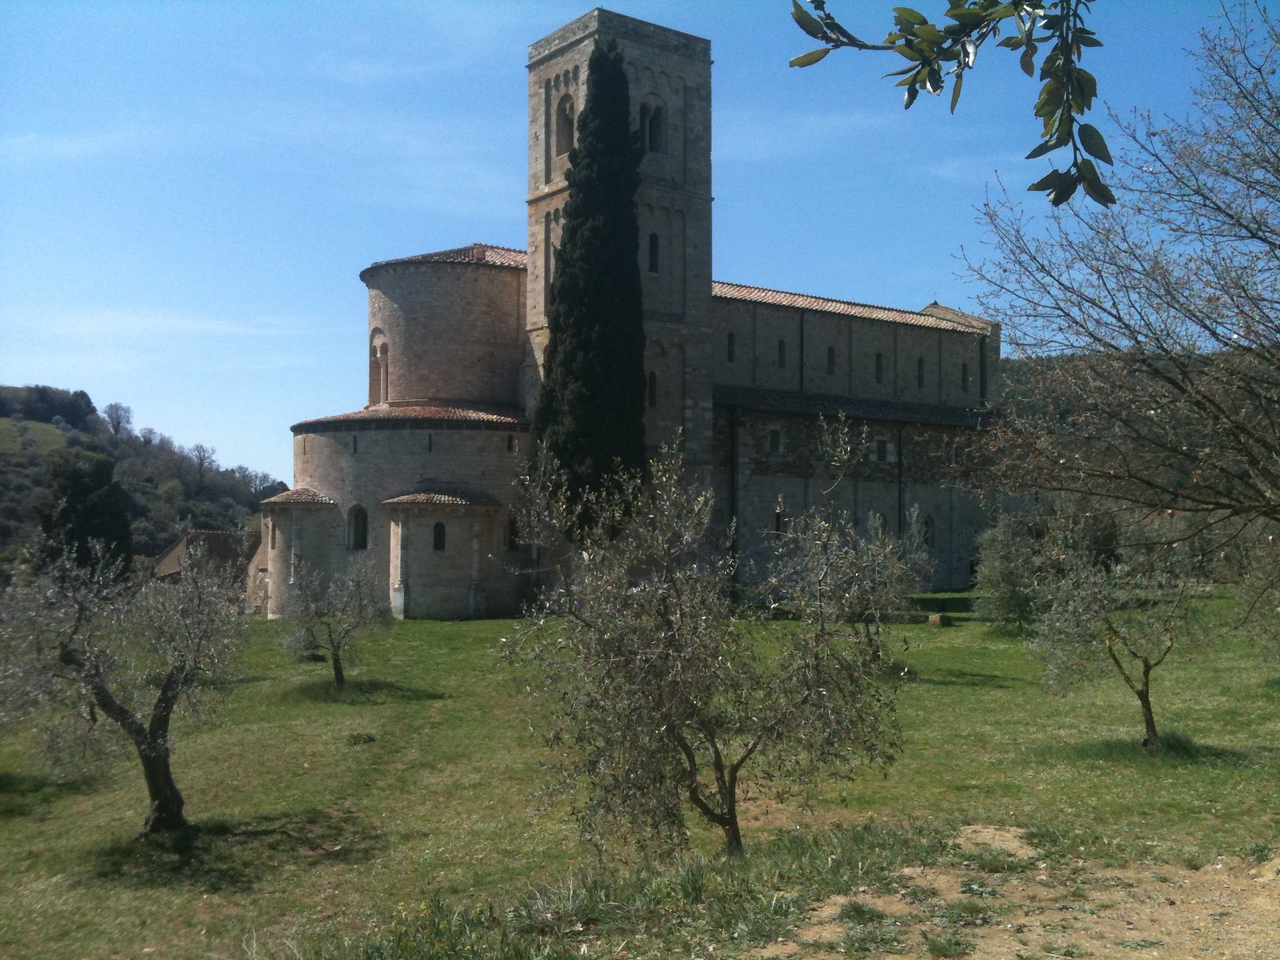 San't Antimo ~ the famous abbey where Gregorian chant still takes place.